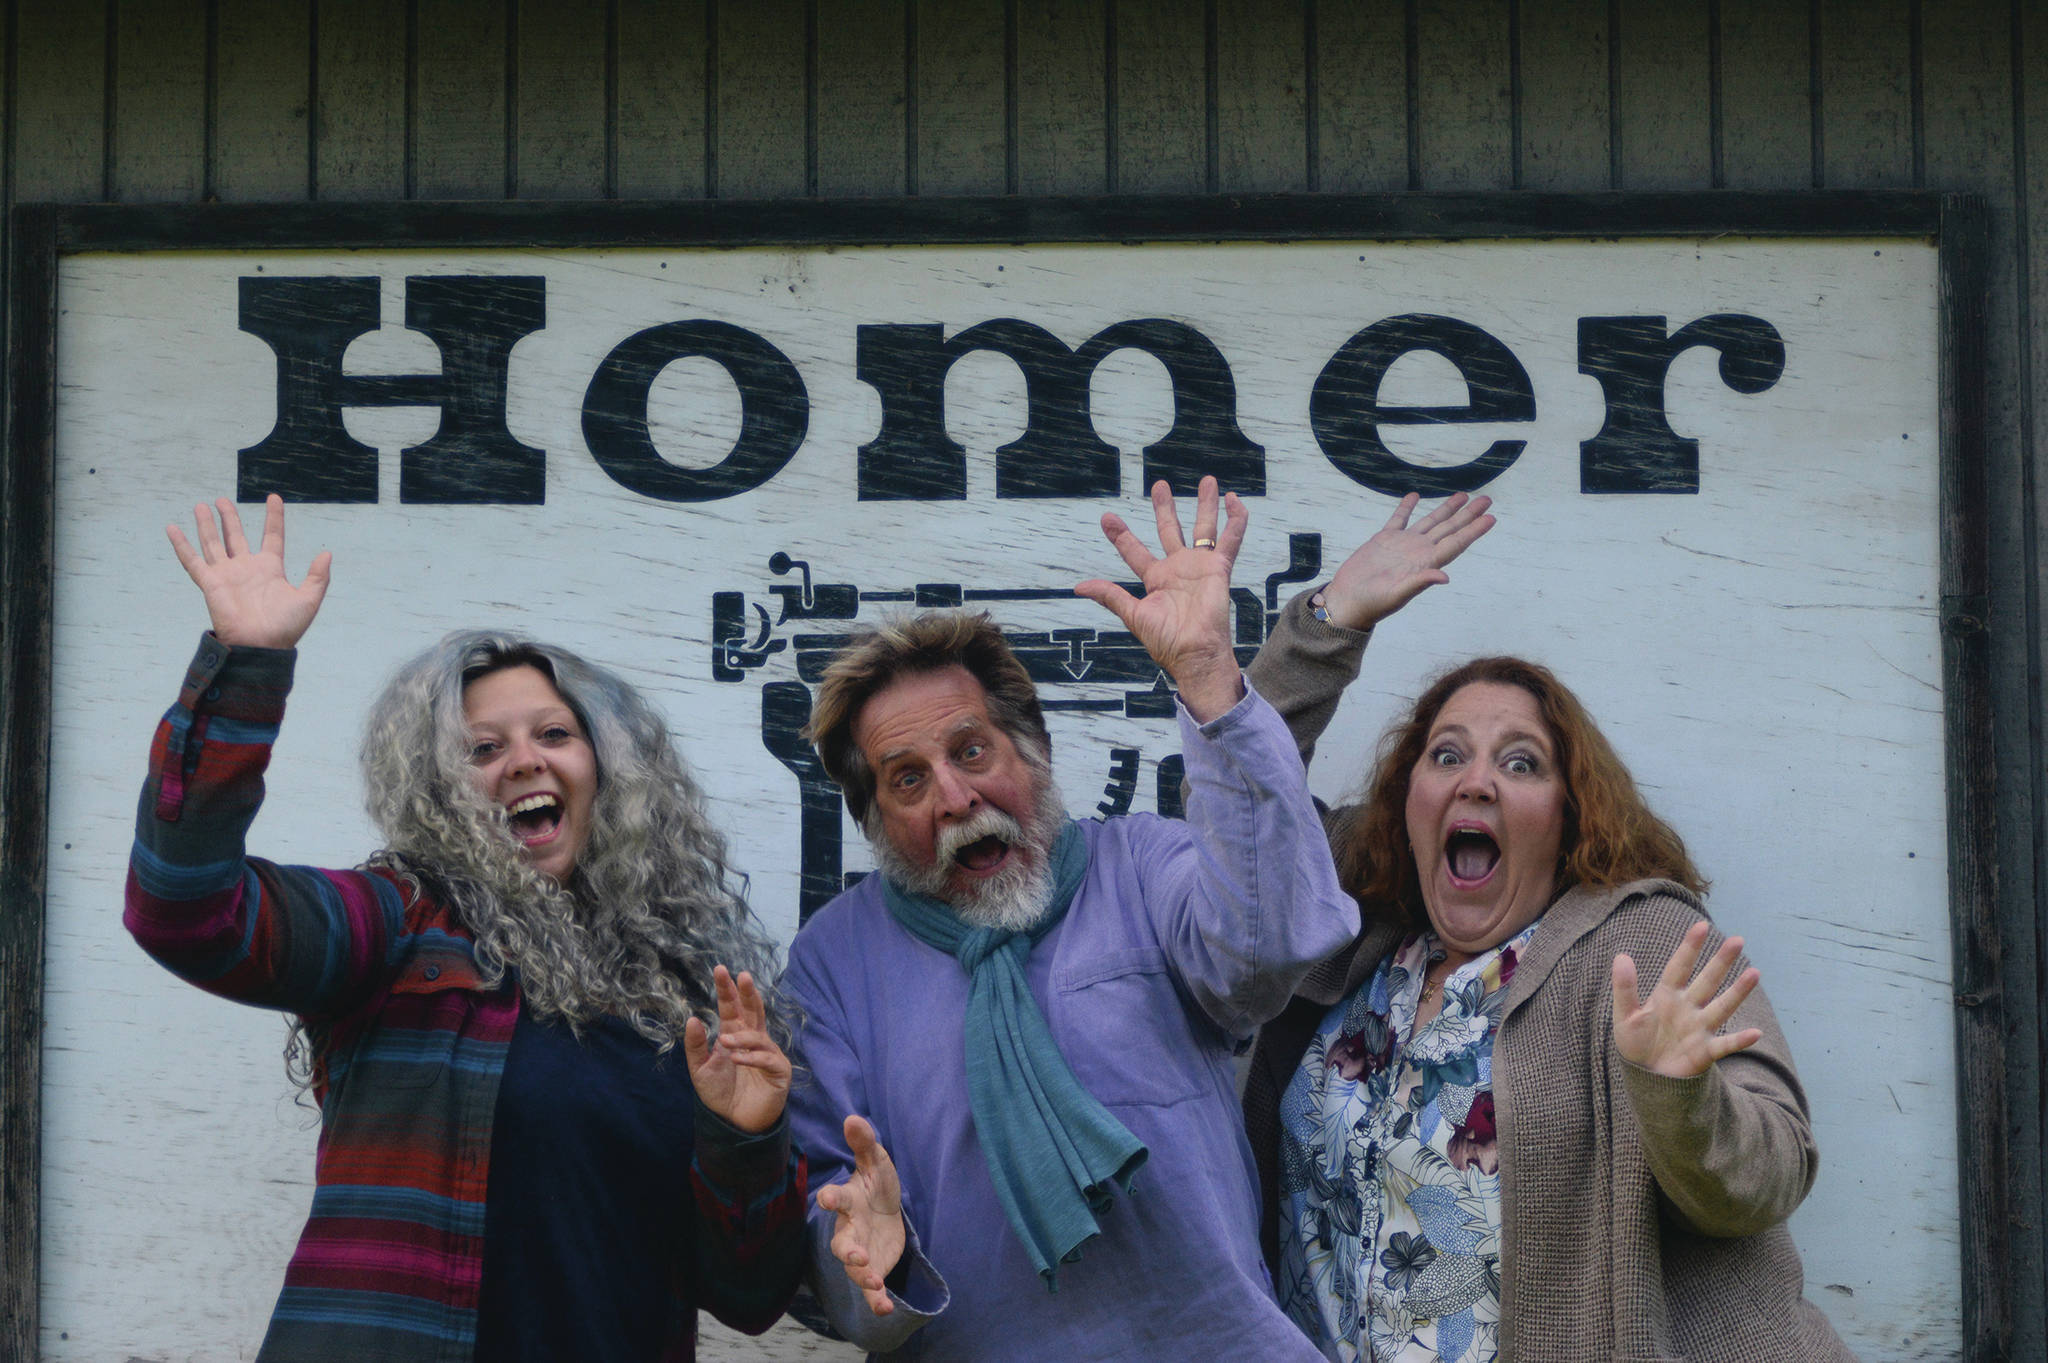 The author (left) enjoys taking a corporate photo with Editor Michael Armstrong (center) and advertising rep Malia Anderson (right) at the Homer News office in Homer, Alaska. (Photo by Michael Armstrong/Homer News)